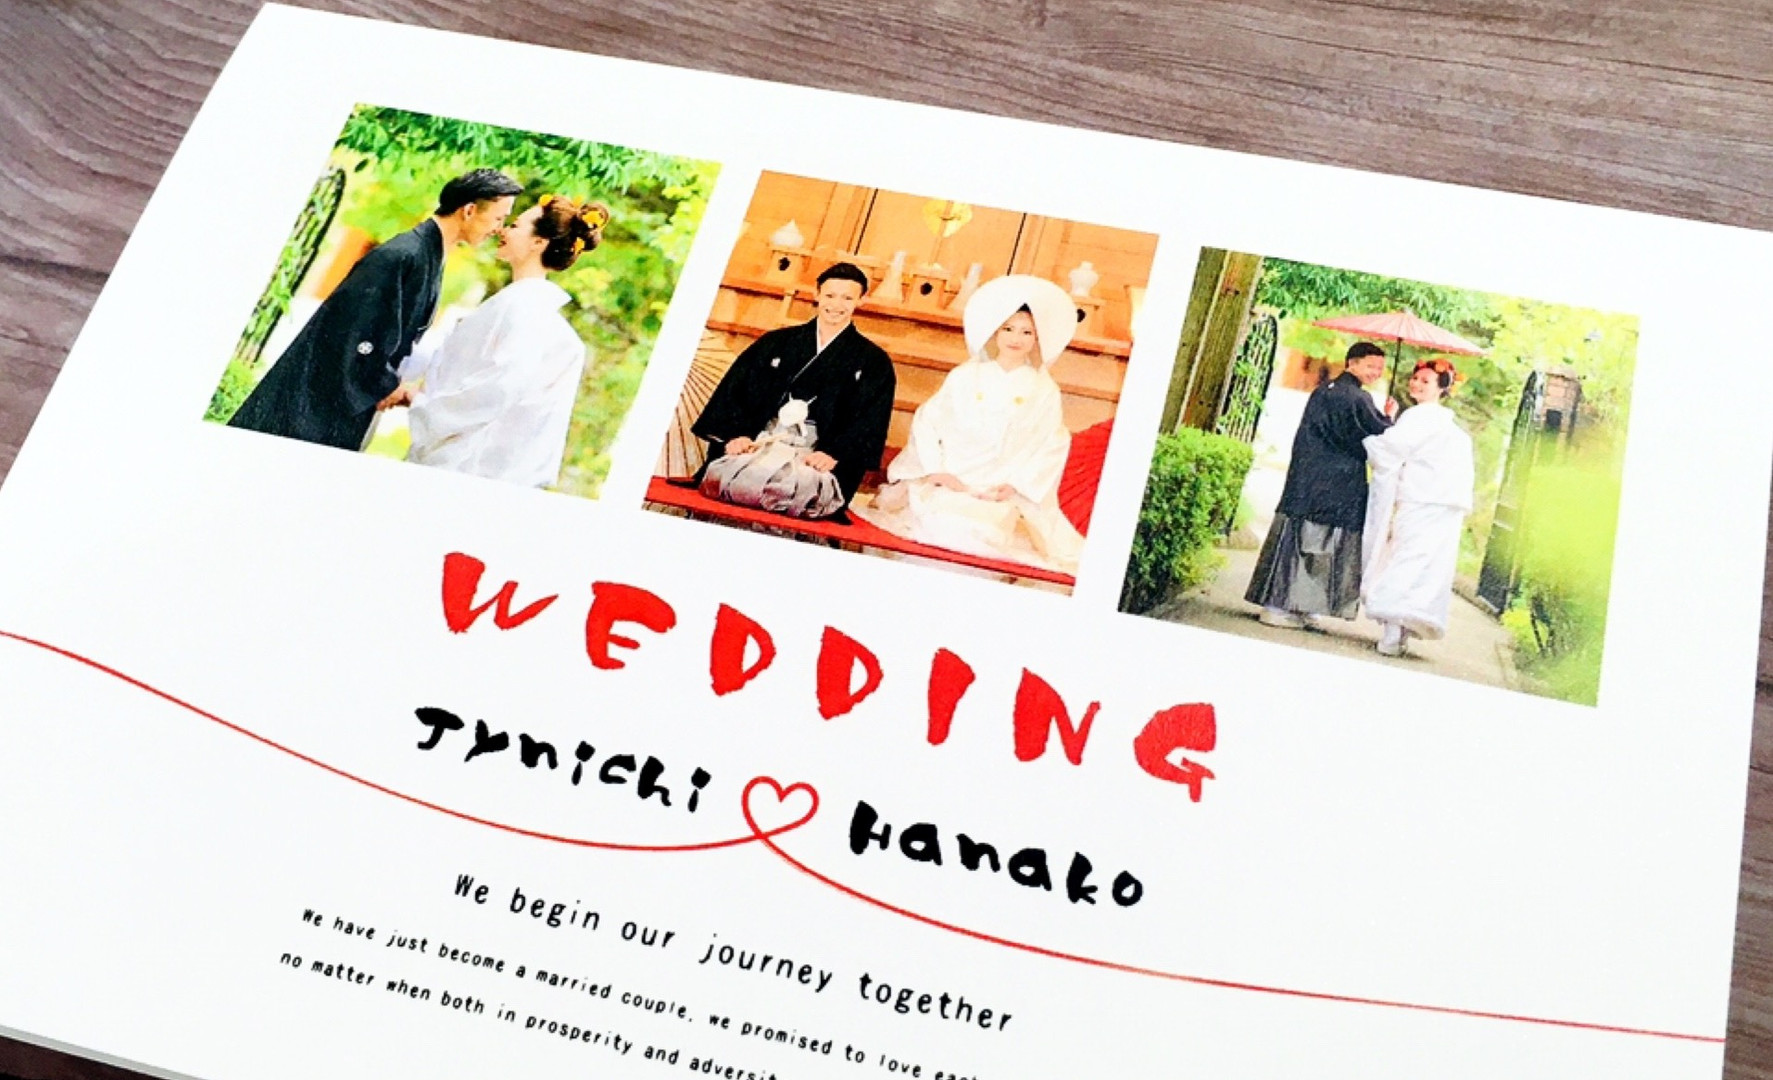 Just married デザイン9-A-2.jpg